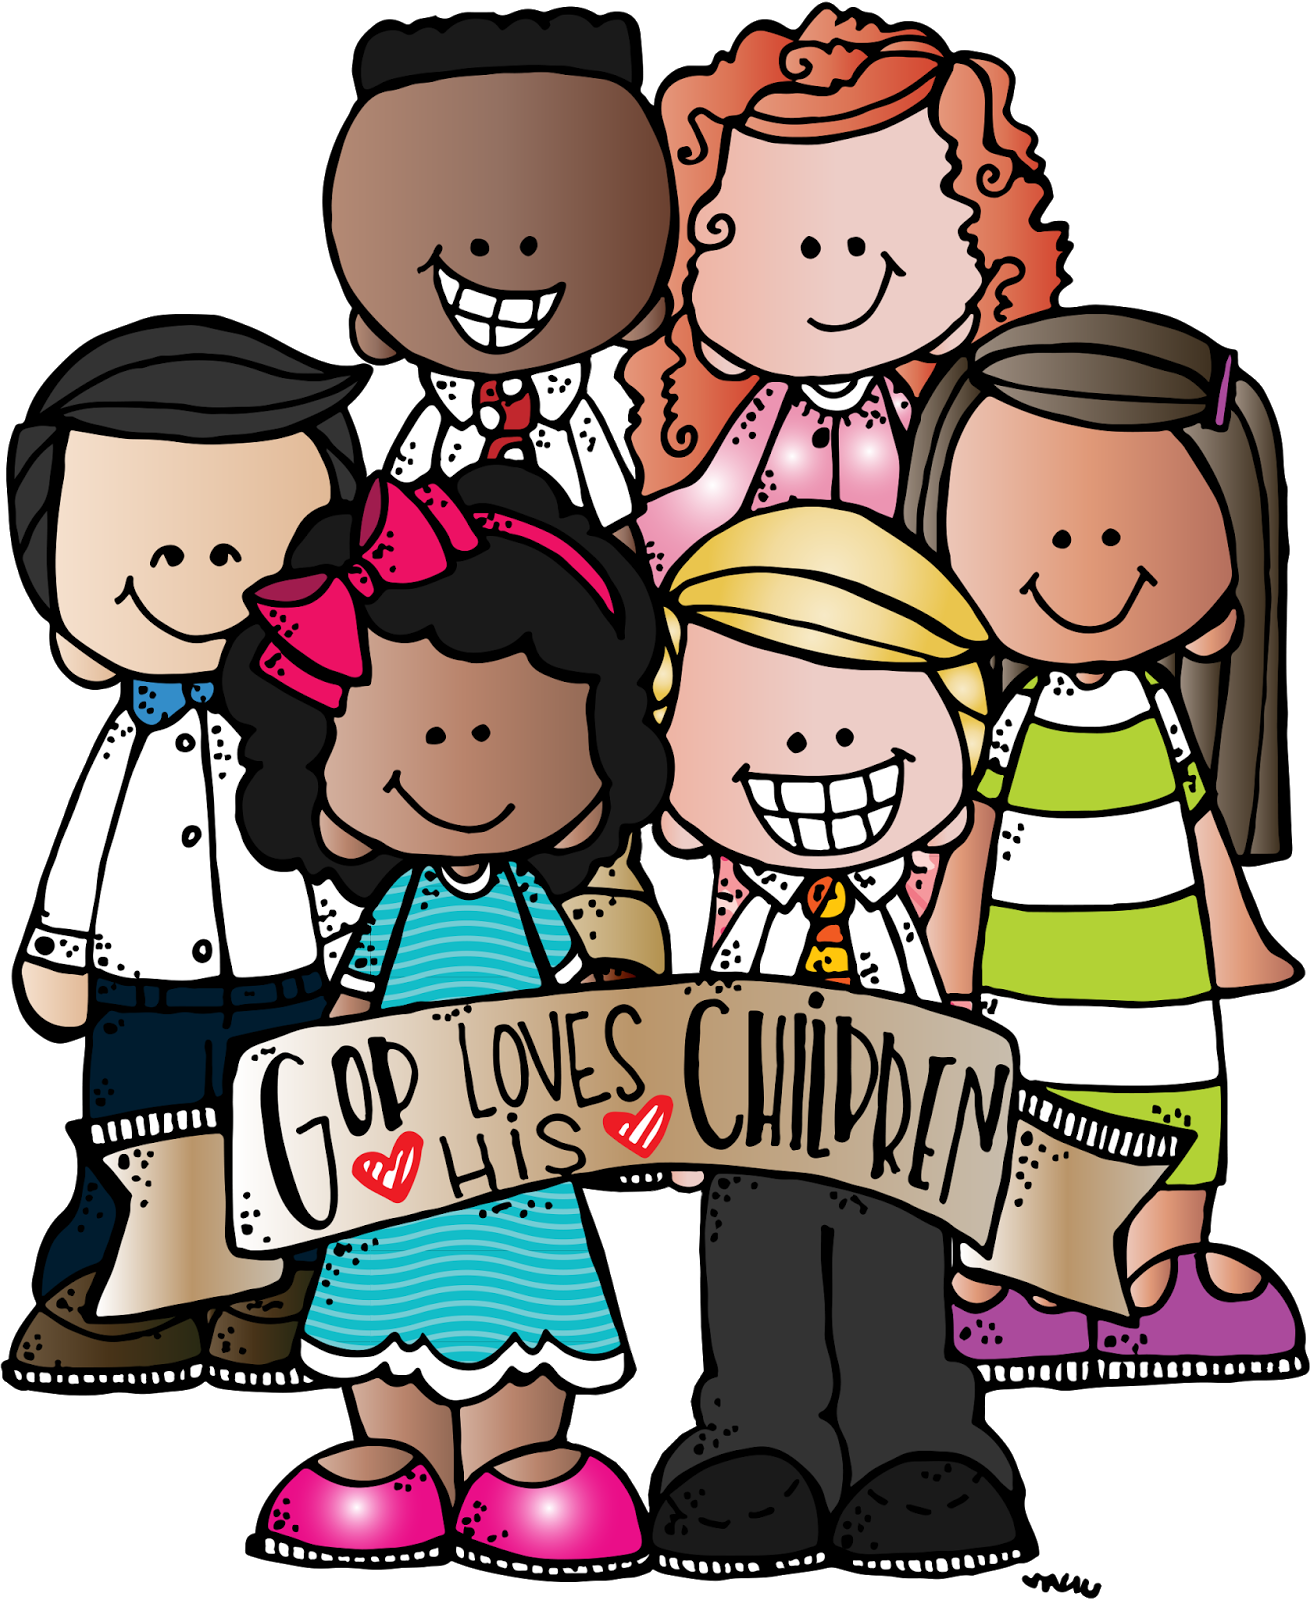 Here are the graphics. Conference clipart kindergarten